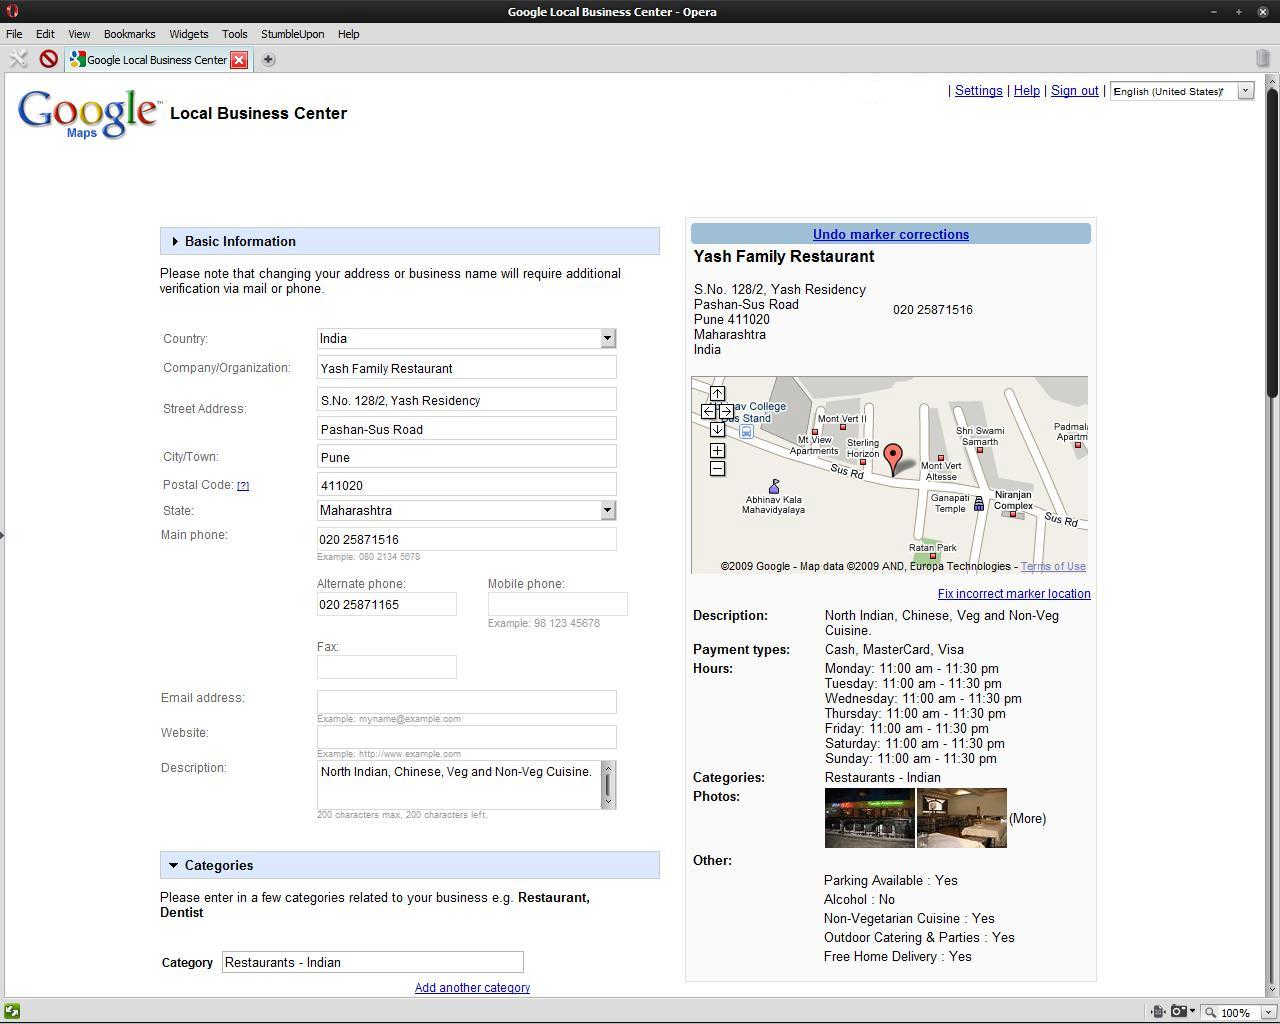 After logging in to my Google Account, Google Maps let me add a busi